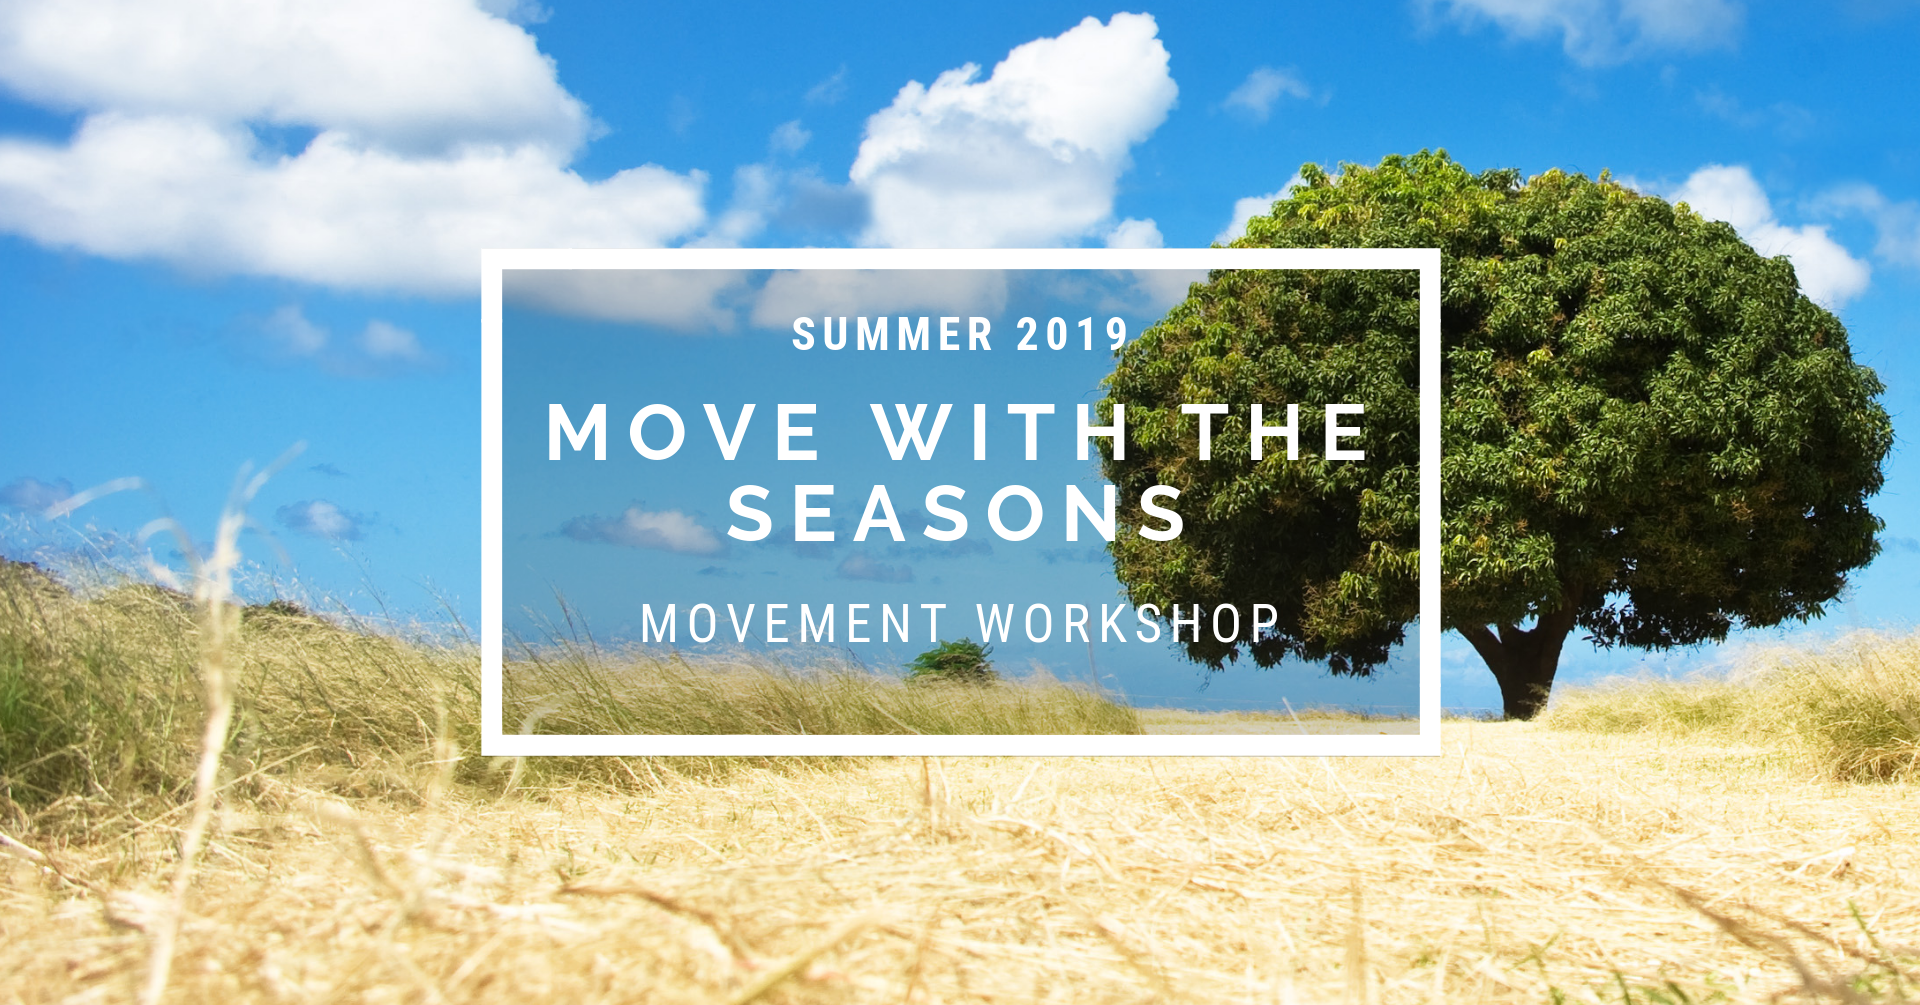 movewiththeseasons_summer2019.png